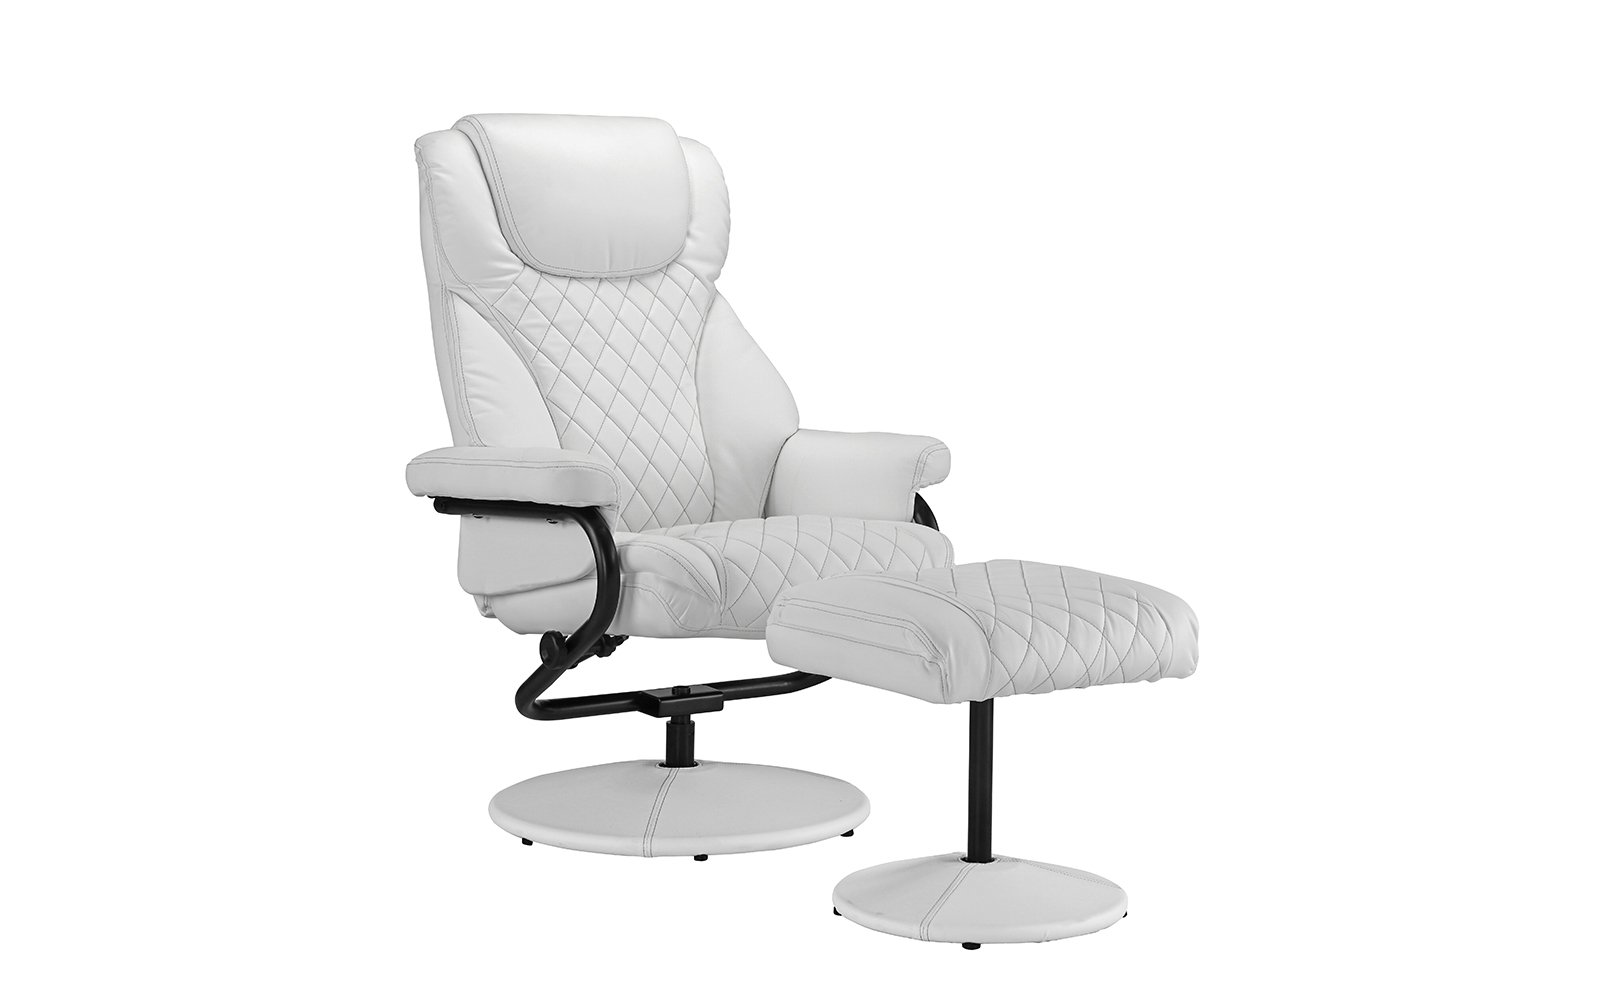 Divano Roma Furniture Office Swivel Chair with Footstool, Faux Leather Reclining Executive and Gaming Chairs